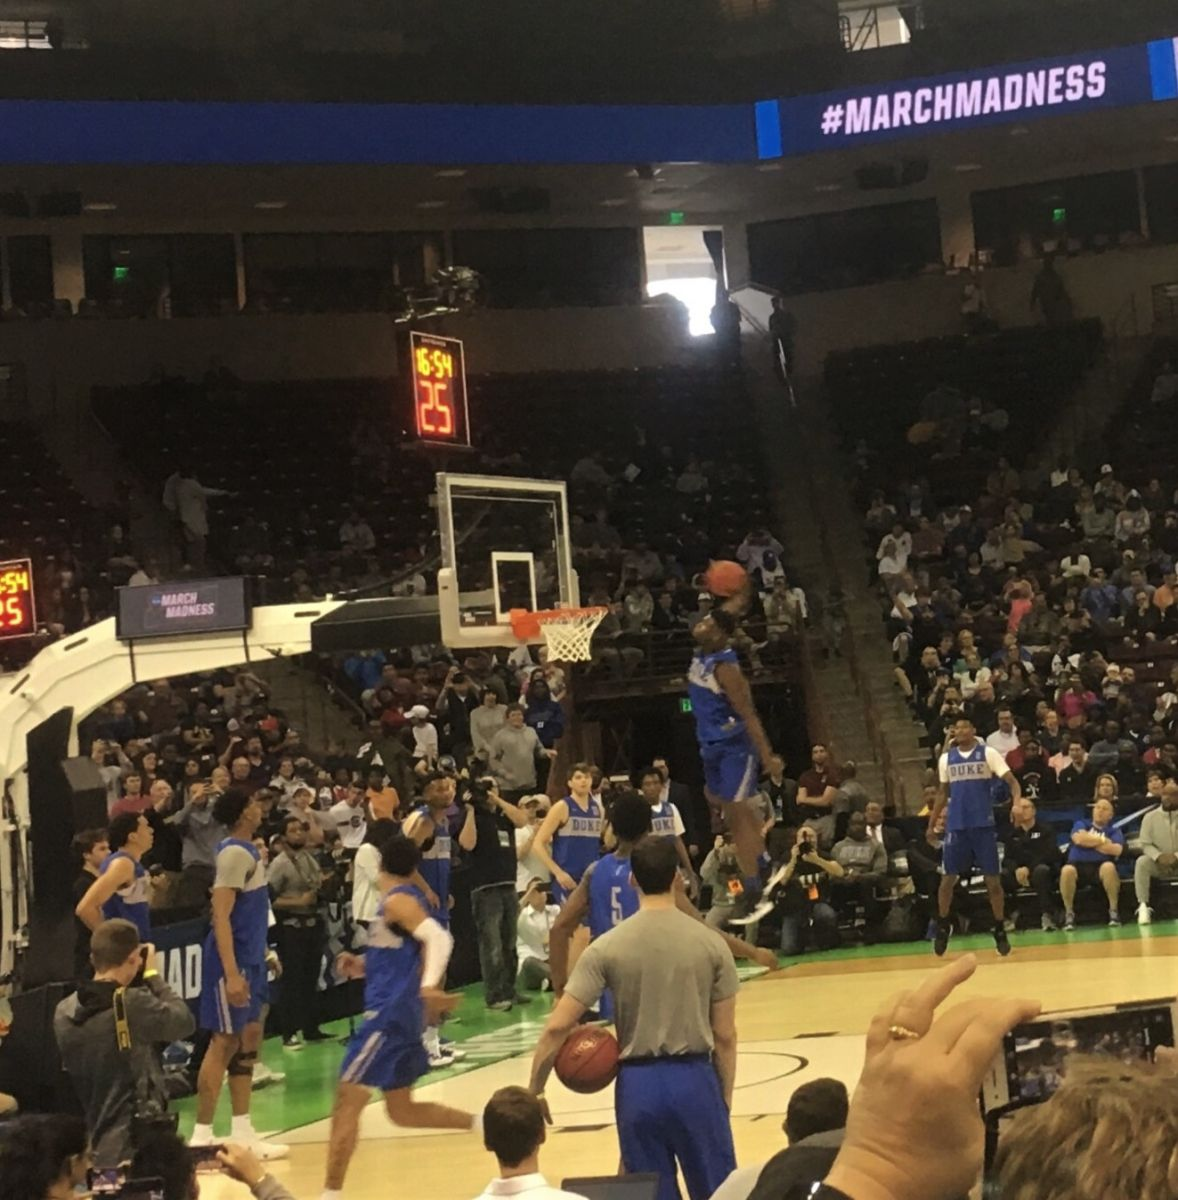 Duke's Zion Willamson goes up for a dunk during Thursday's NCAA regional practice that brought an estimated crowd of 5,000 to its feet. (Photo/Staff)